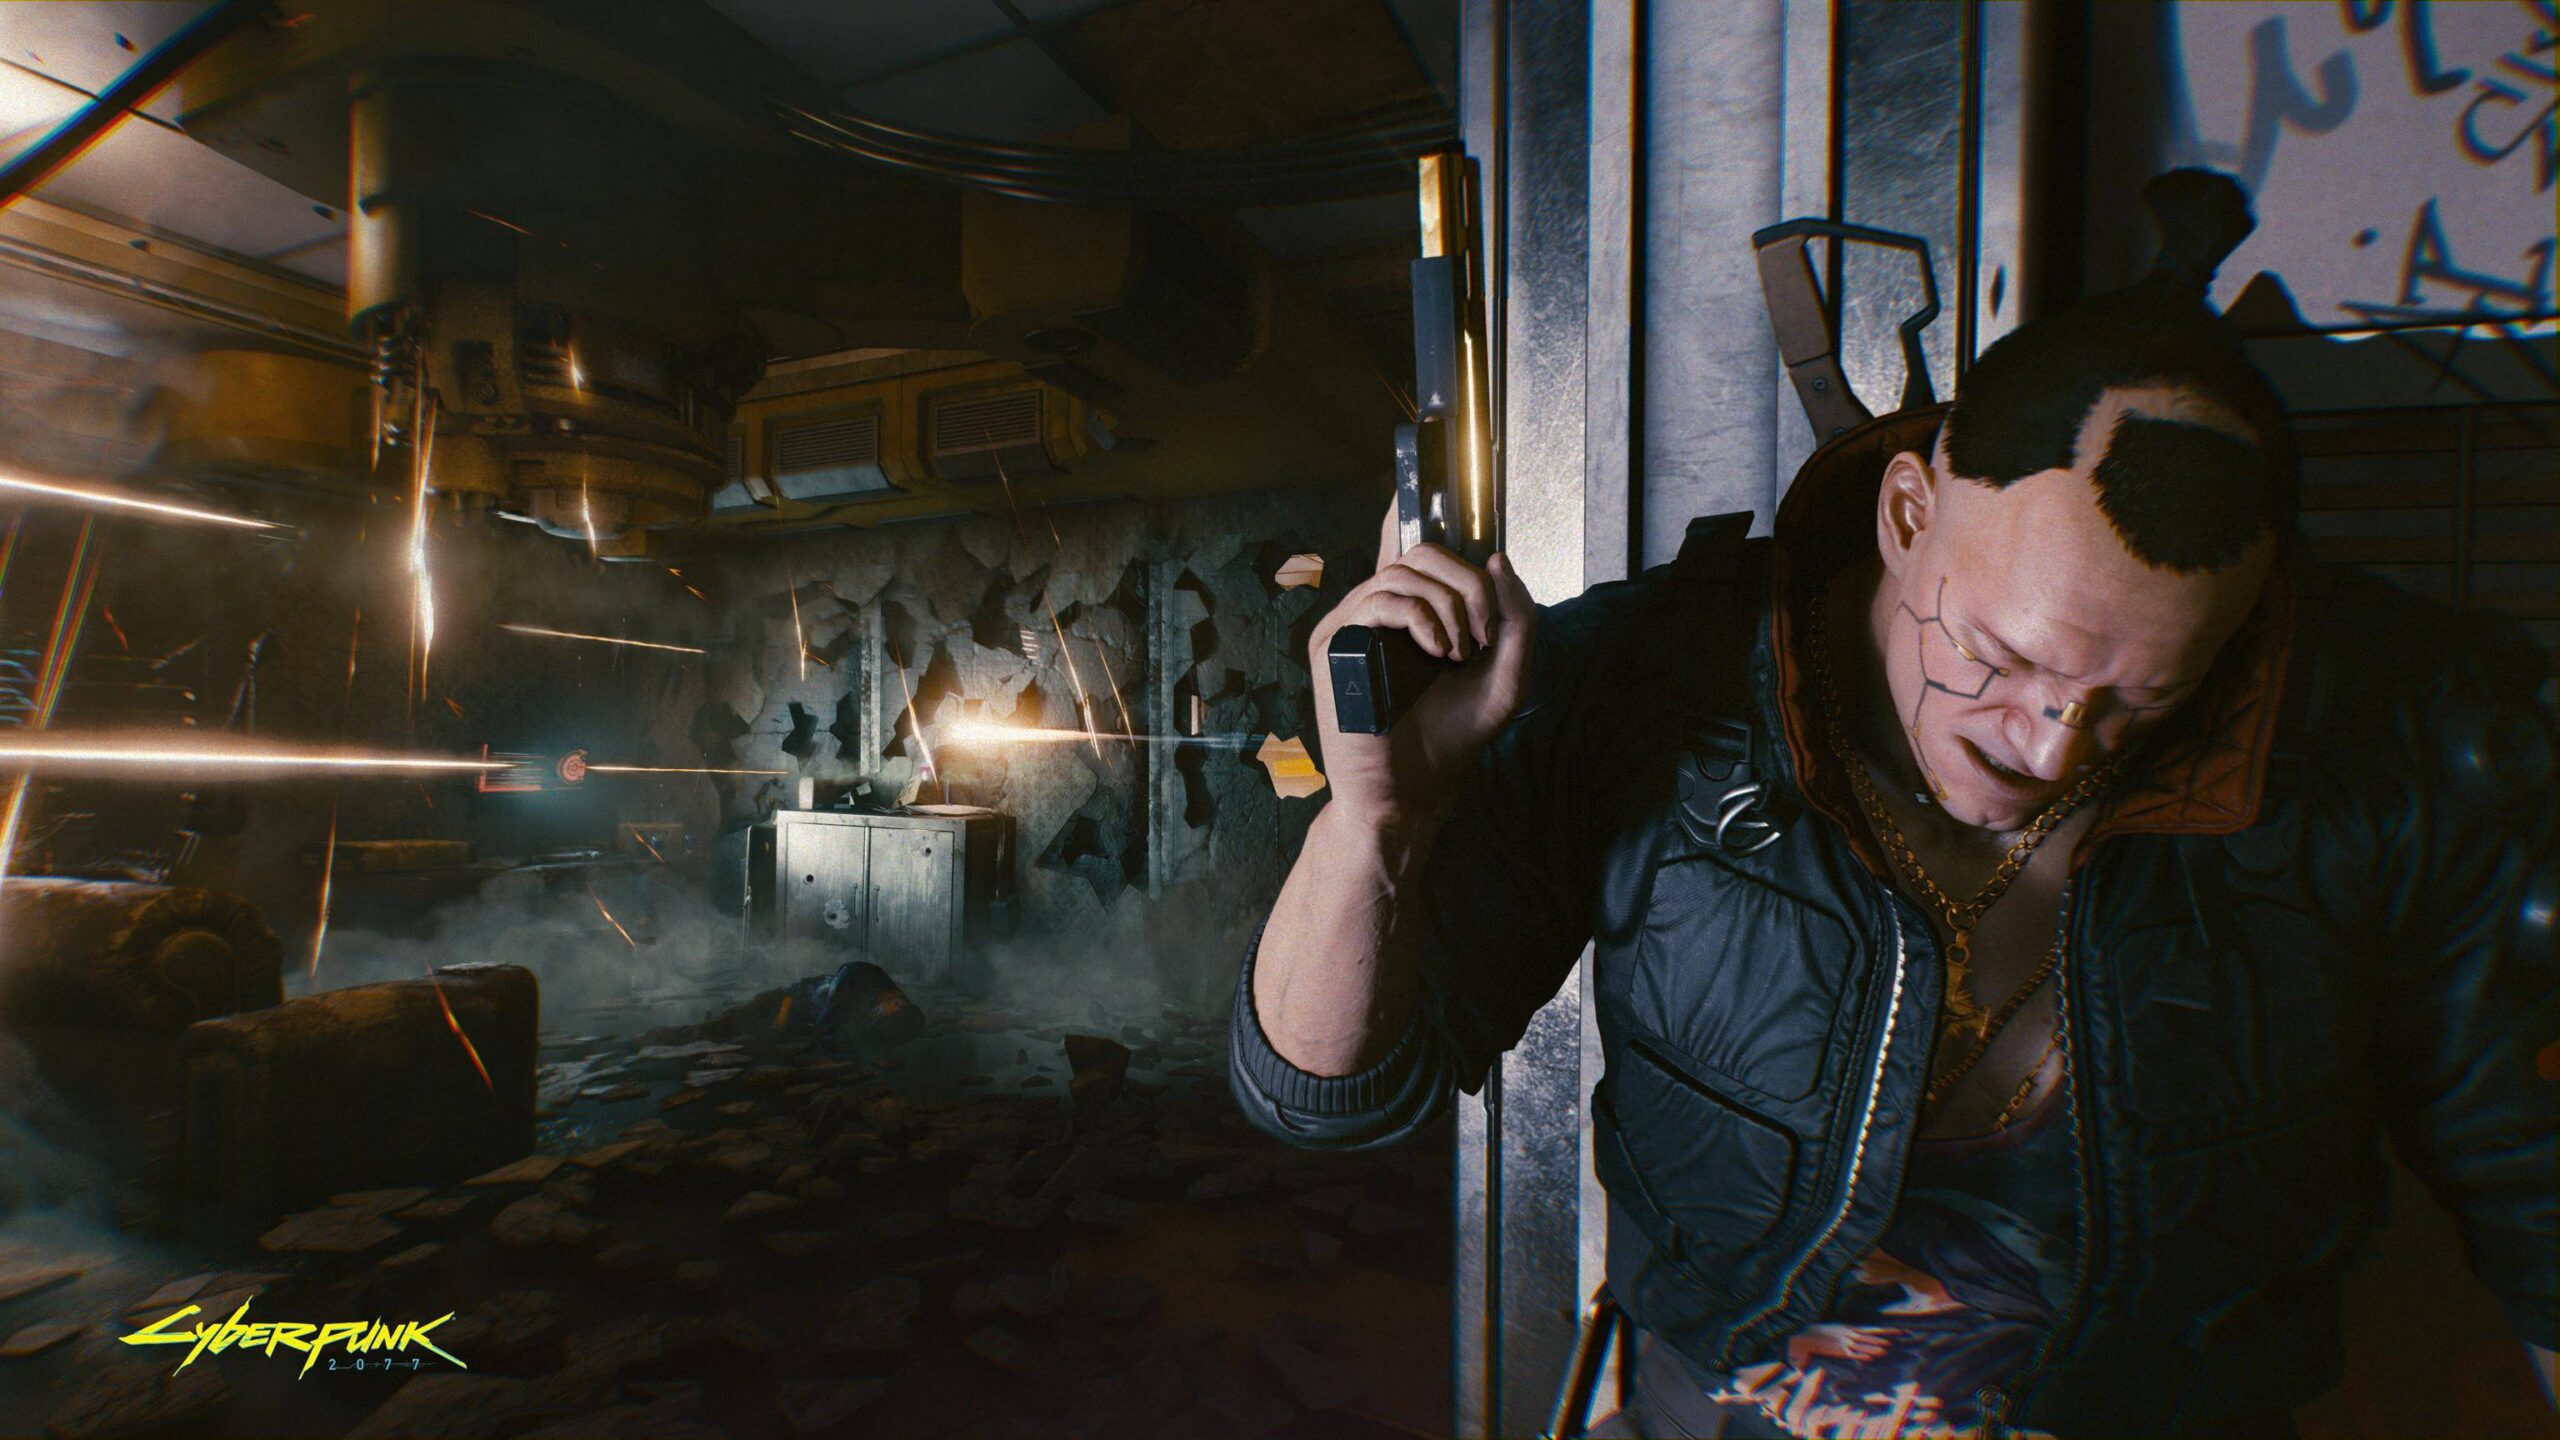 cyberpunk-2077-mod-fixes-grainy-graphics-plaguing-some-pc-gamers